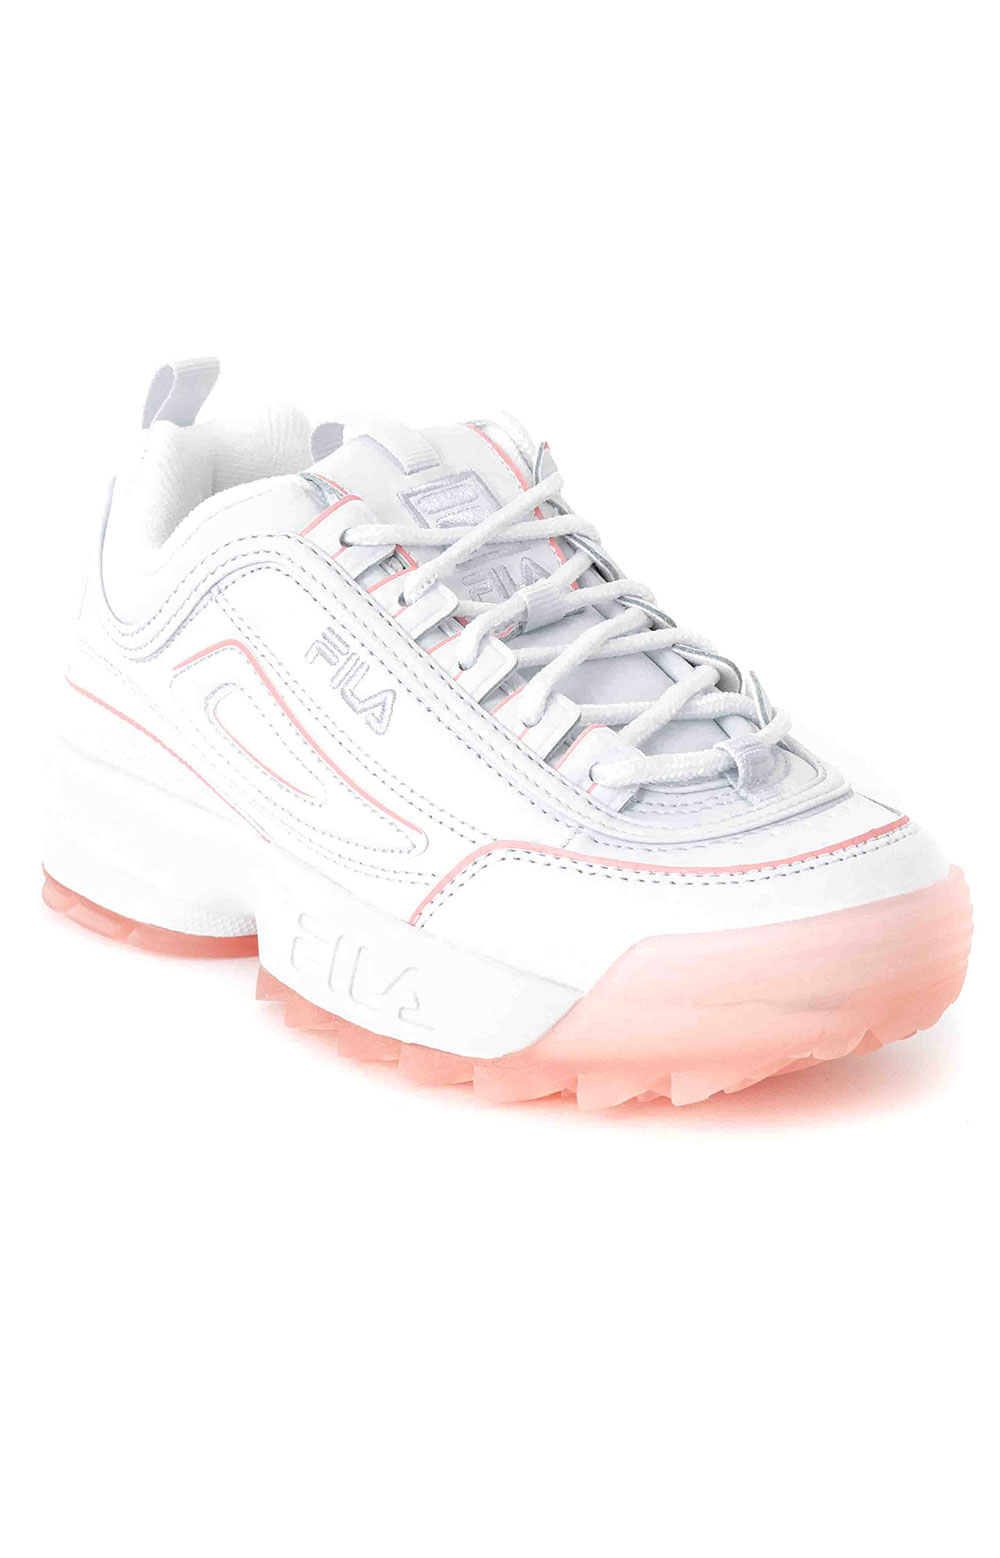 Disruptor II Ice Shoes - White/Pink 3